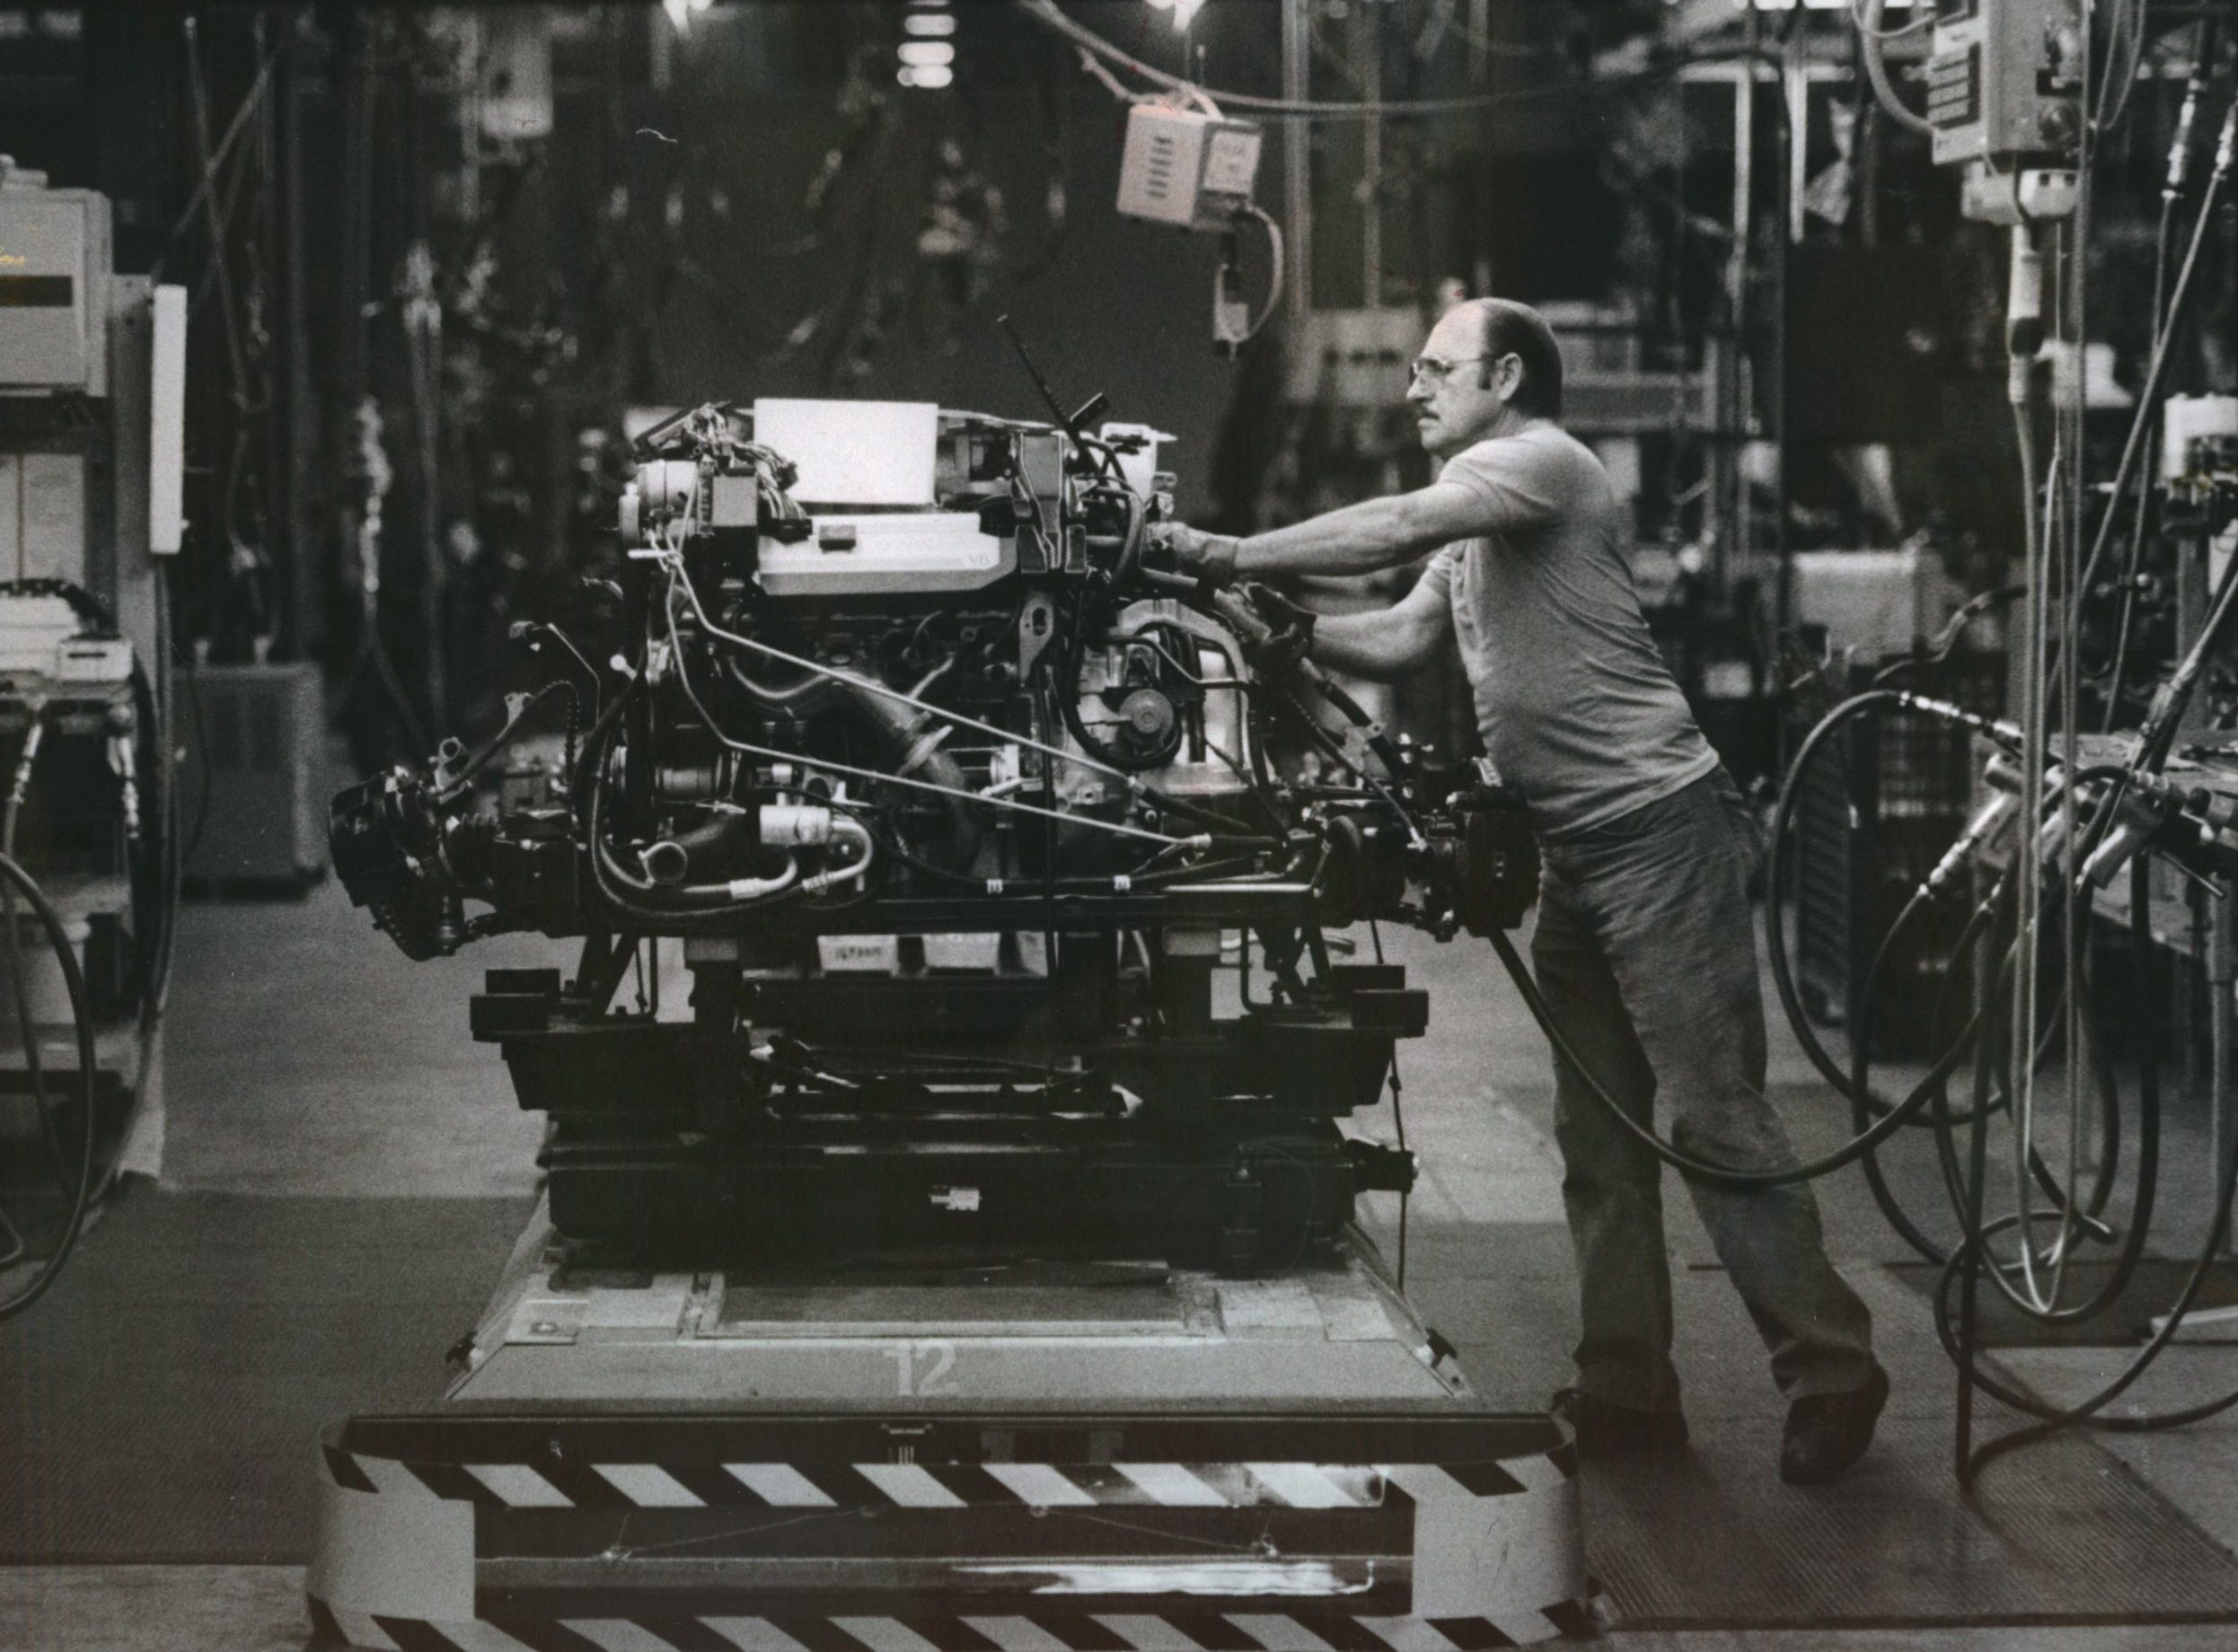 A worker at GM's Poletown plant.